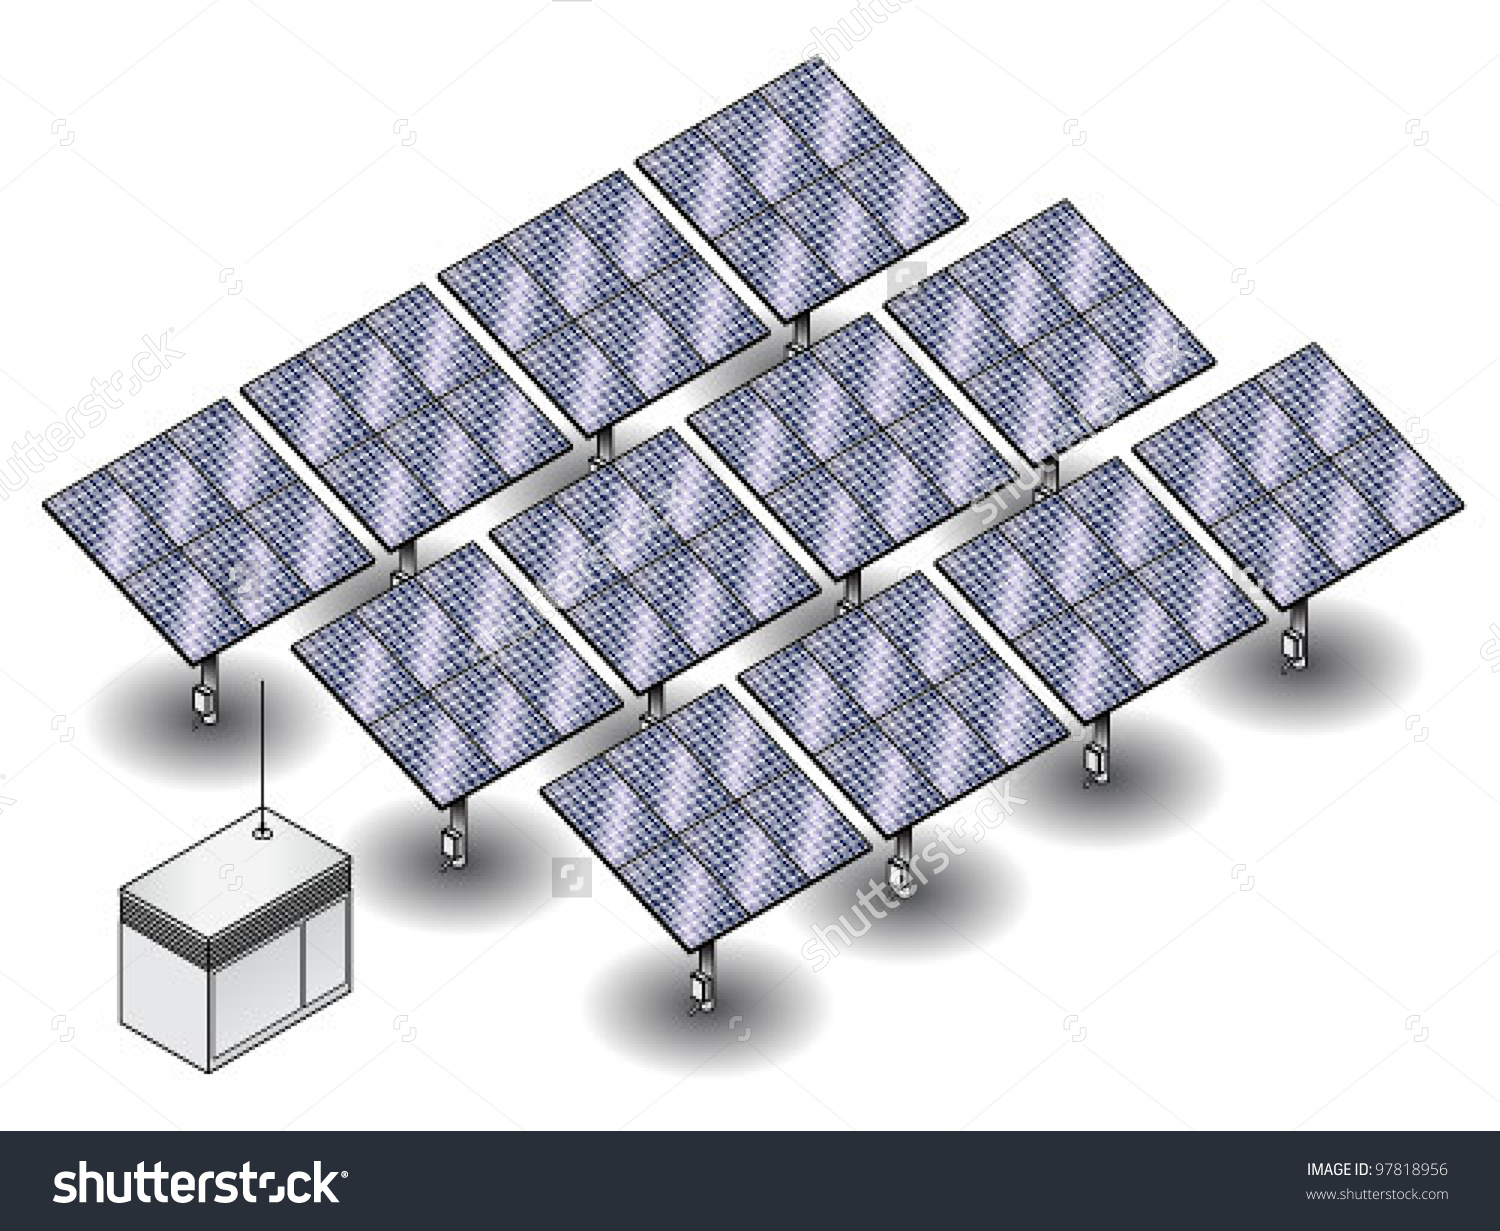 A Small Solar Farm With 12 Clusters Of Solar Panels And A Control.